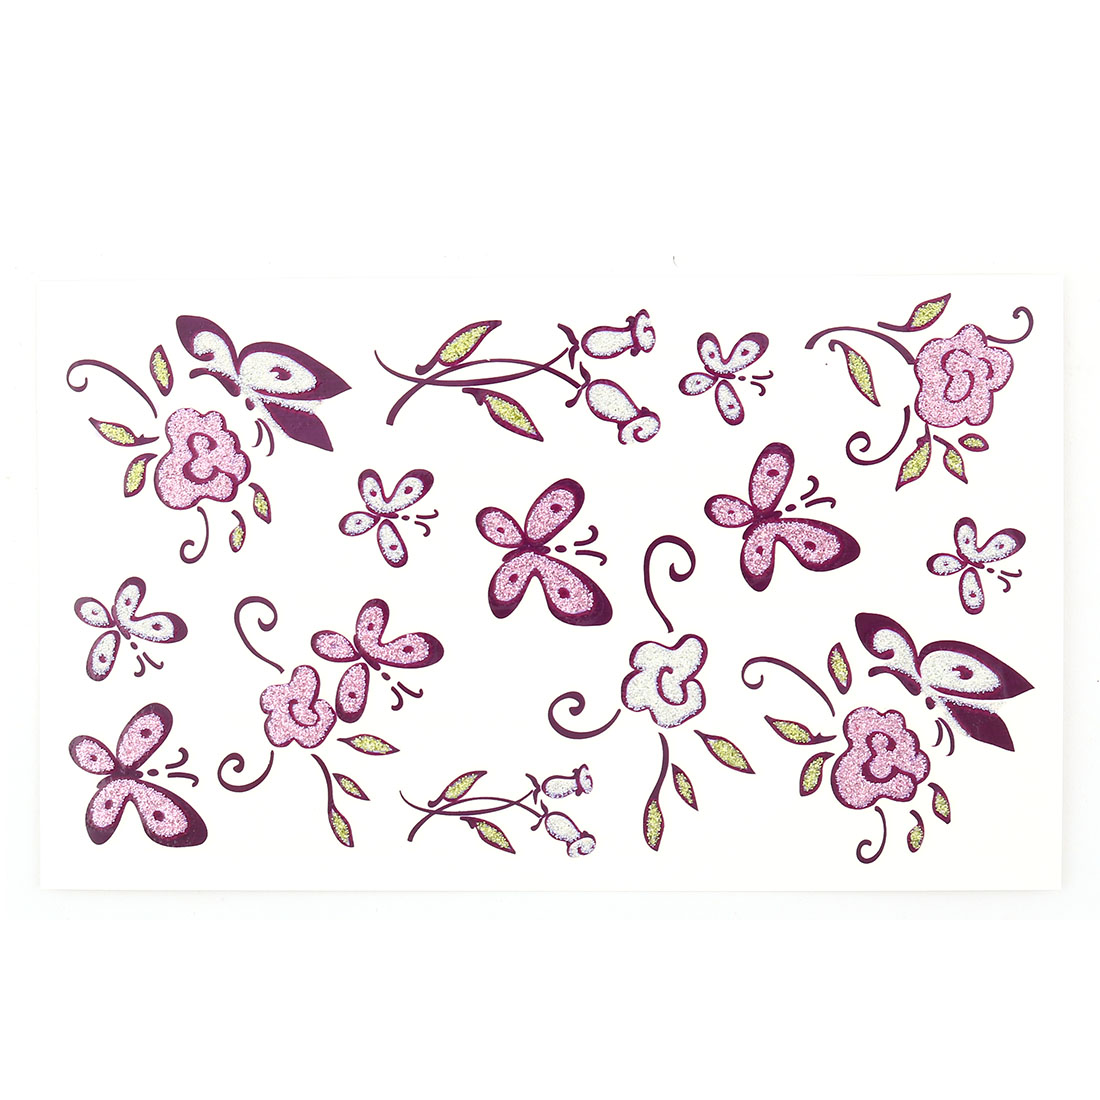 Women Flower Butterfly Pattern Body Art Arm Paints Sticker Decal Temporary Tattoo Sheet